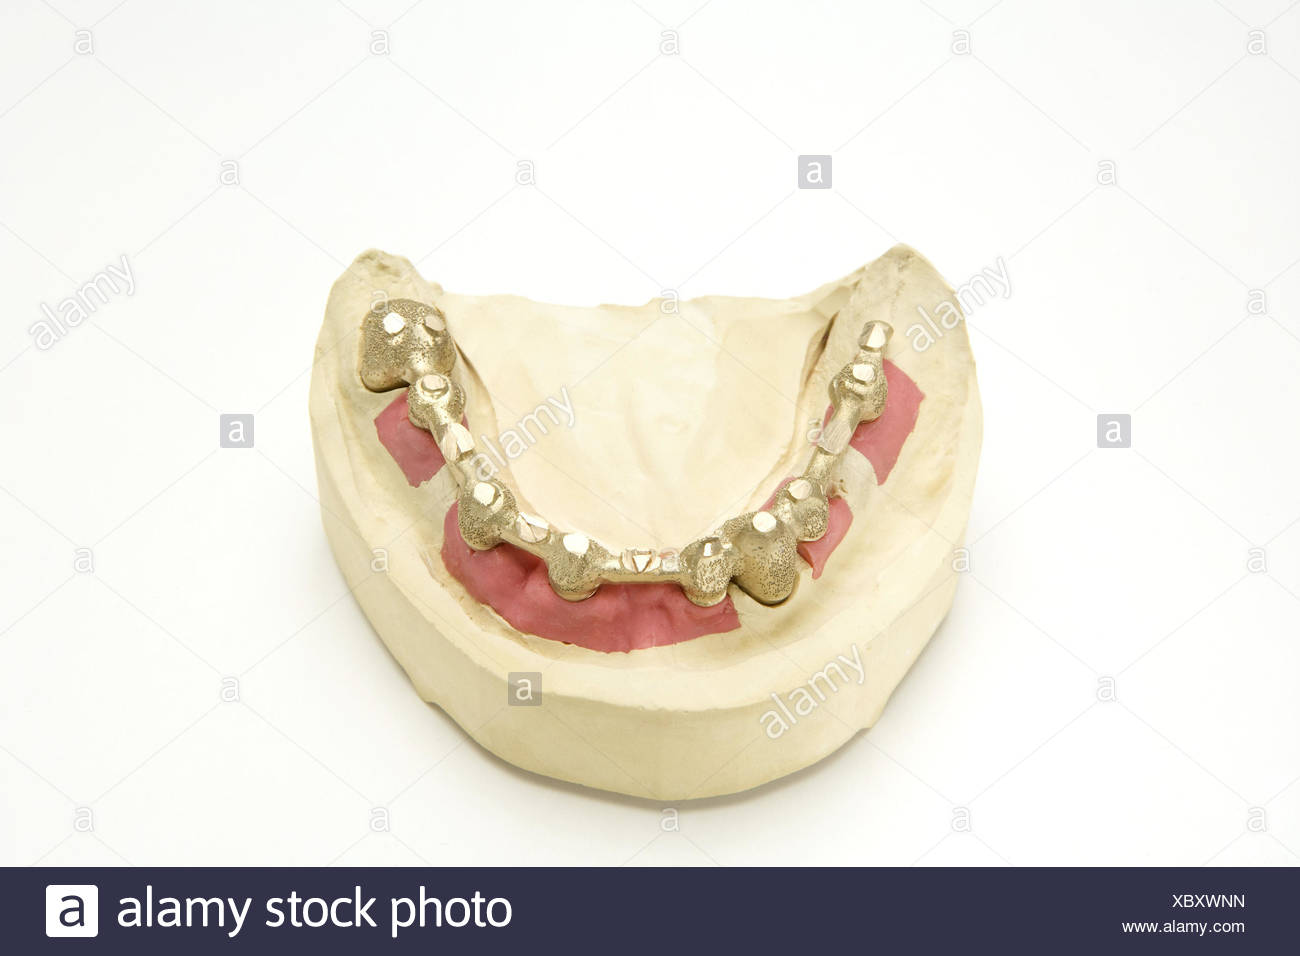 Set dentures, crowns, gypsum model, cog laboratory, denture, prosthesis, bite, loosely, gold teeth, cog precaution, dentistry, health, health policy, product photography, - Stock Image